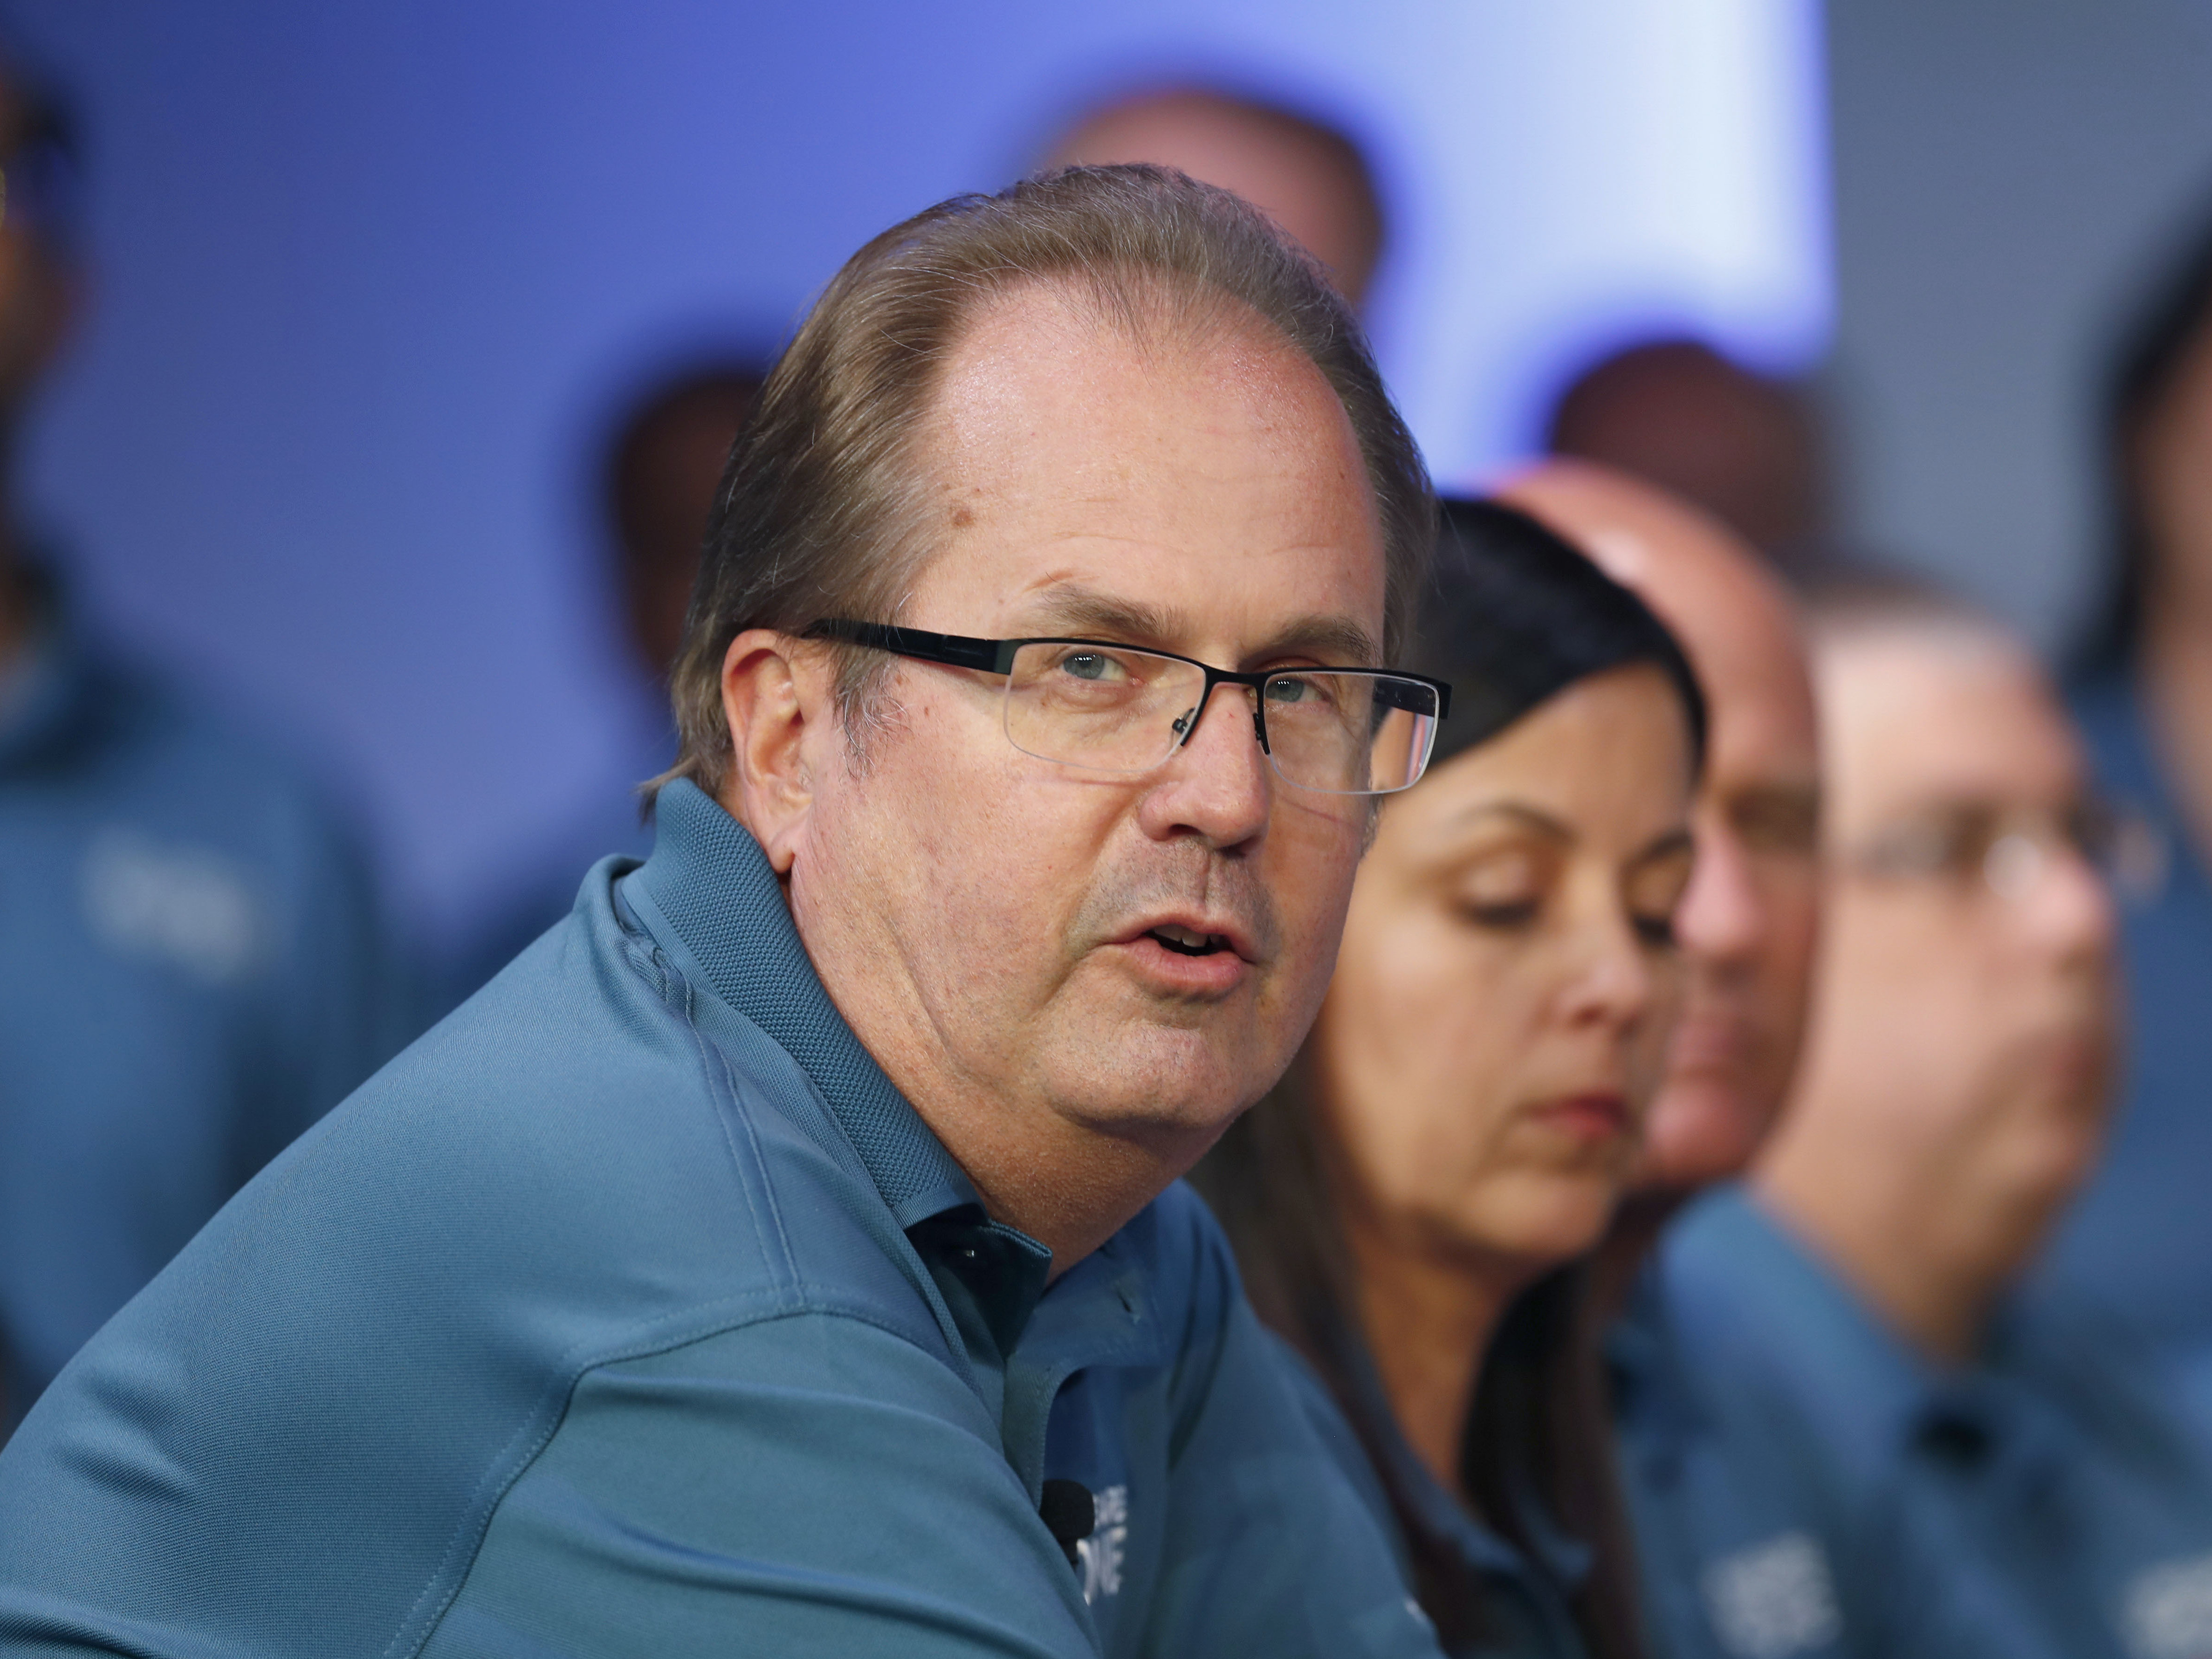 UAW President Gary Jones Abruptly Resigns Amid Corruption Scandal